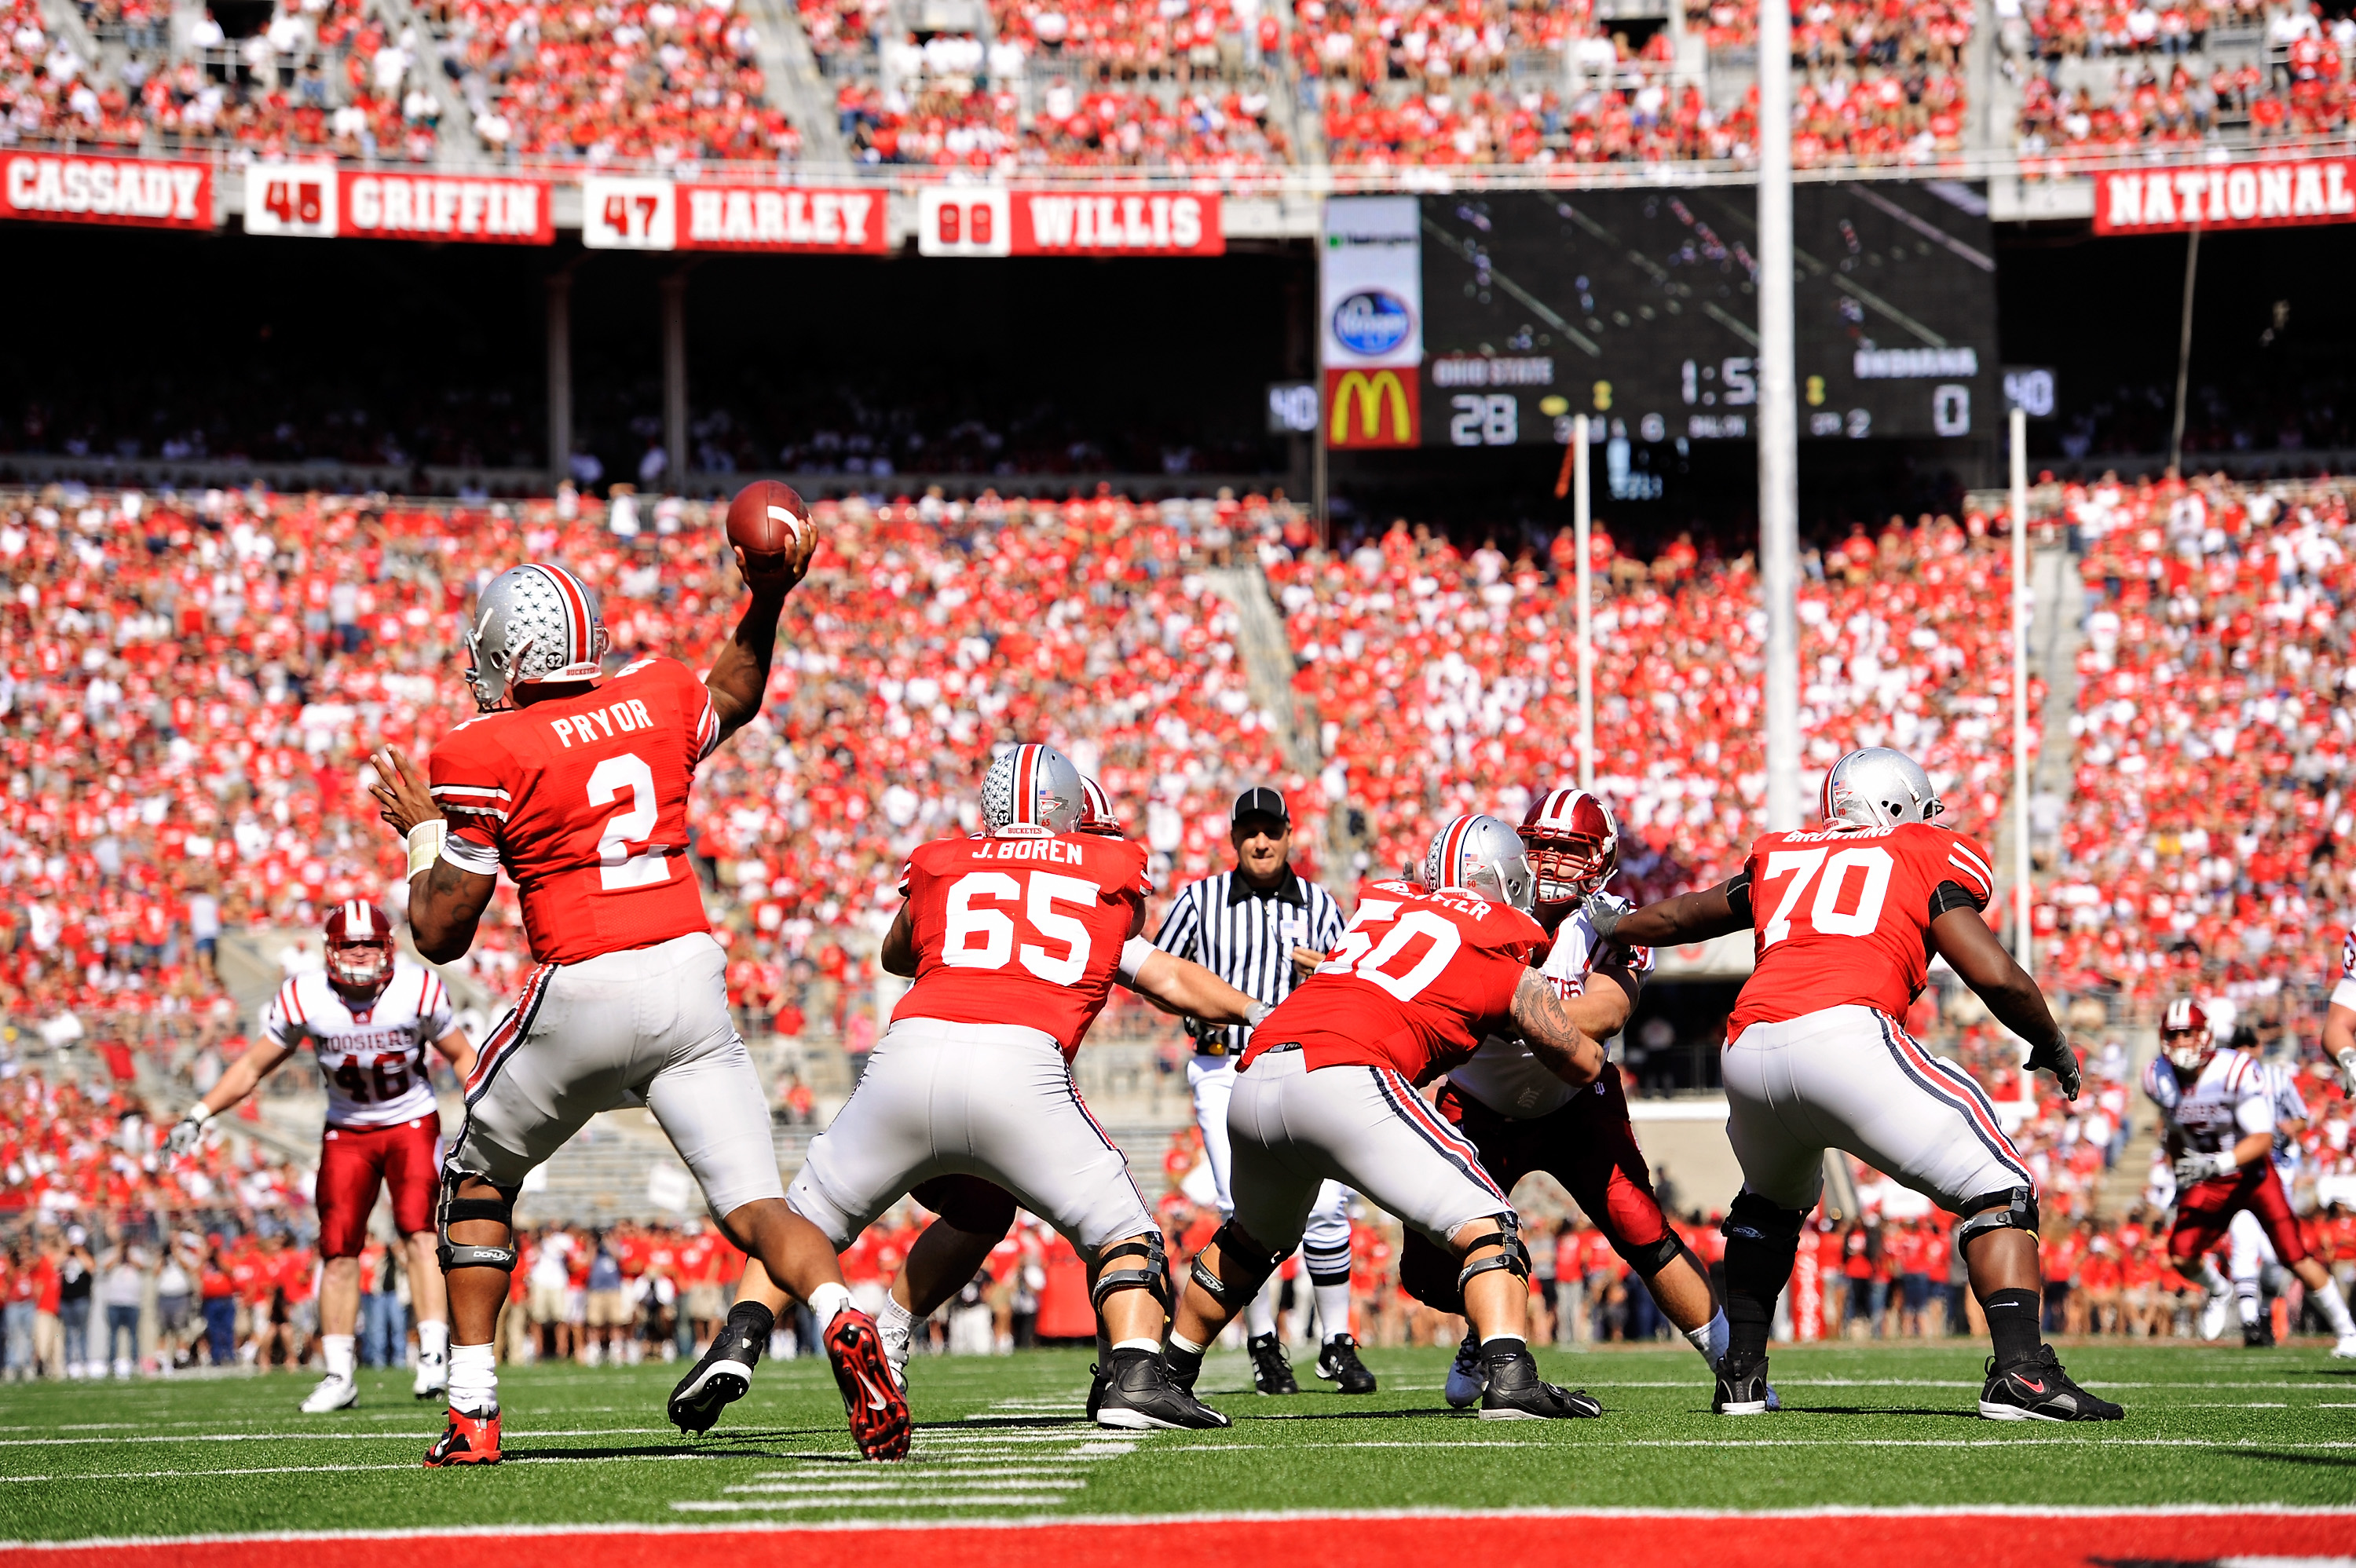 COLUMBUS, OH - OCTOBER 9:  Quarterback Terrelle Pryor #2 of the Ohio State Buckeyes makes a pass as his offensive line holds back the Indiana Hoosiers at Ohio Stadium on October 9, 2010 in Columbus, Ohio. Ohio State defeated Indiana 38-10.   (Photo by Jam